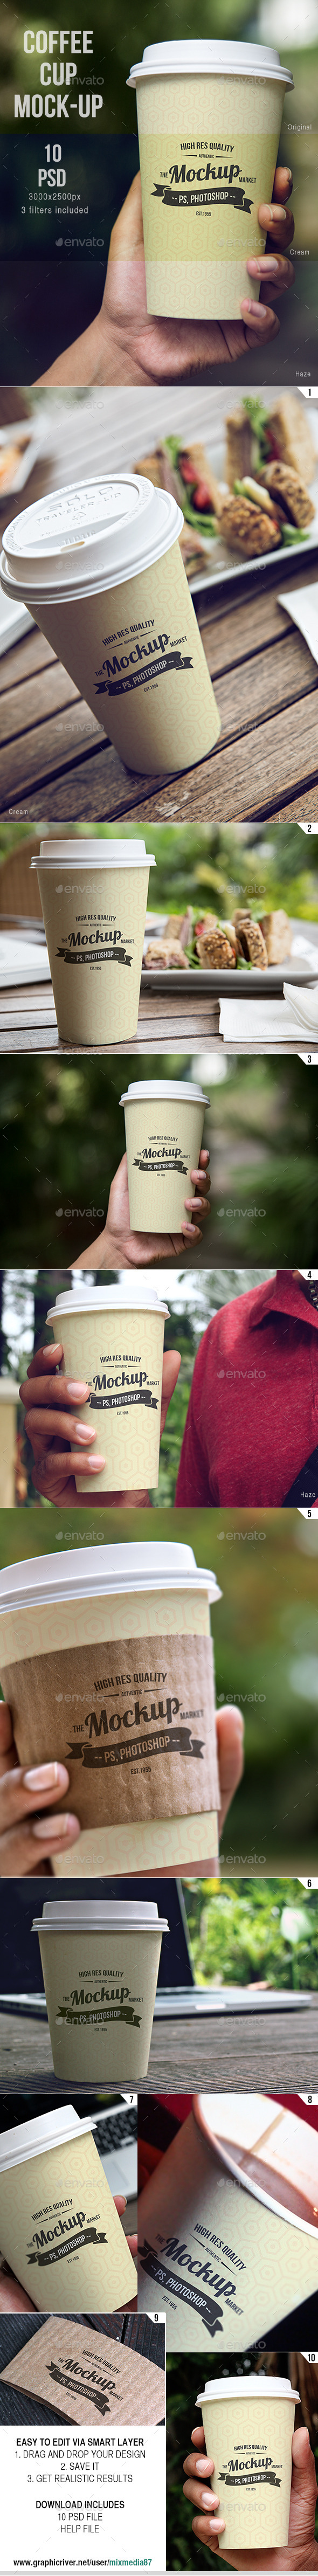 GraphicRiver Coffee Cup Mockup 8861003